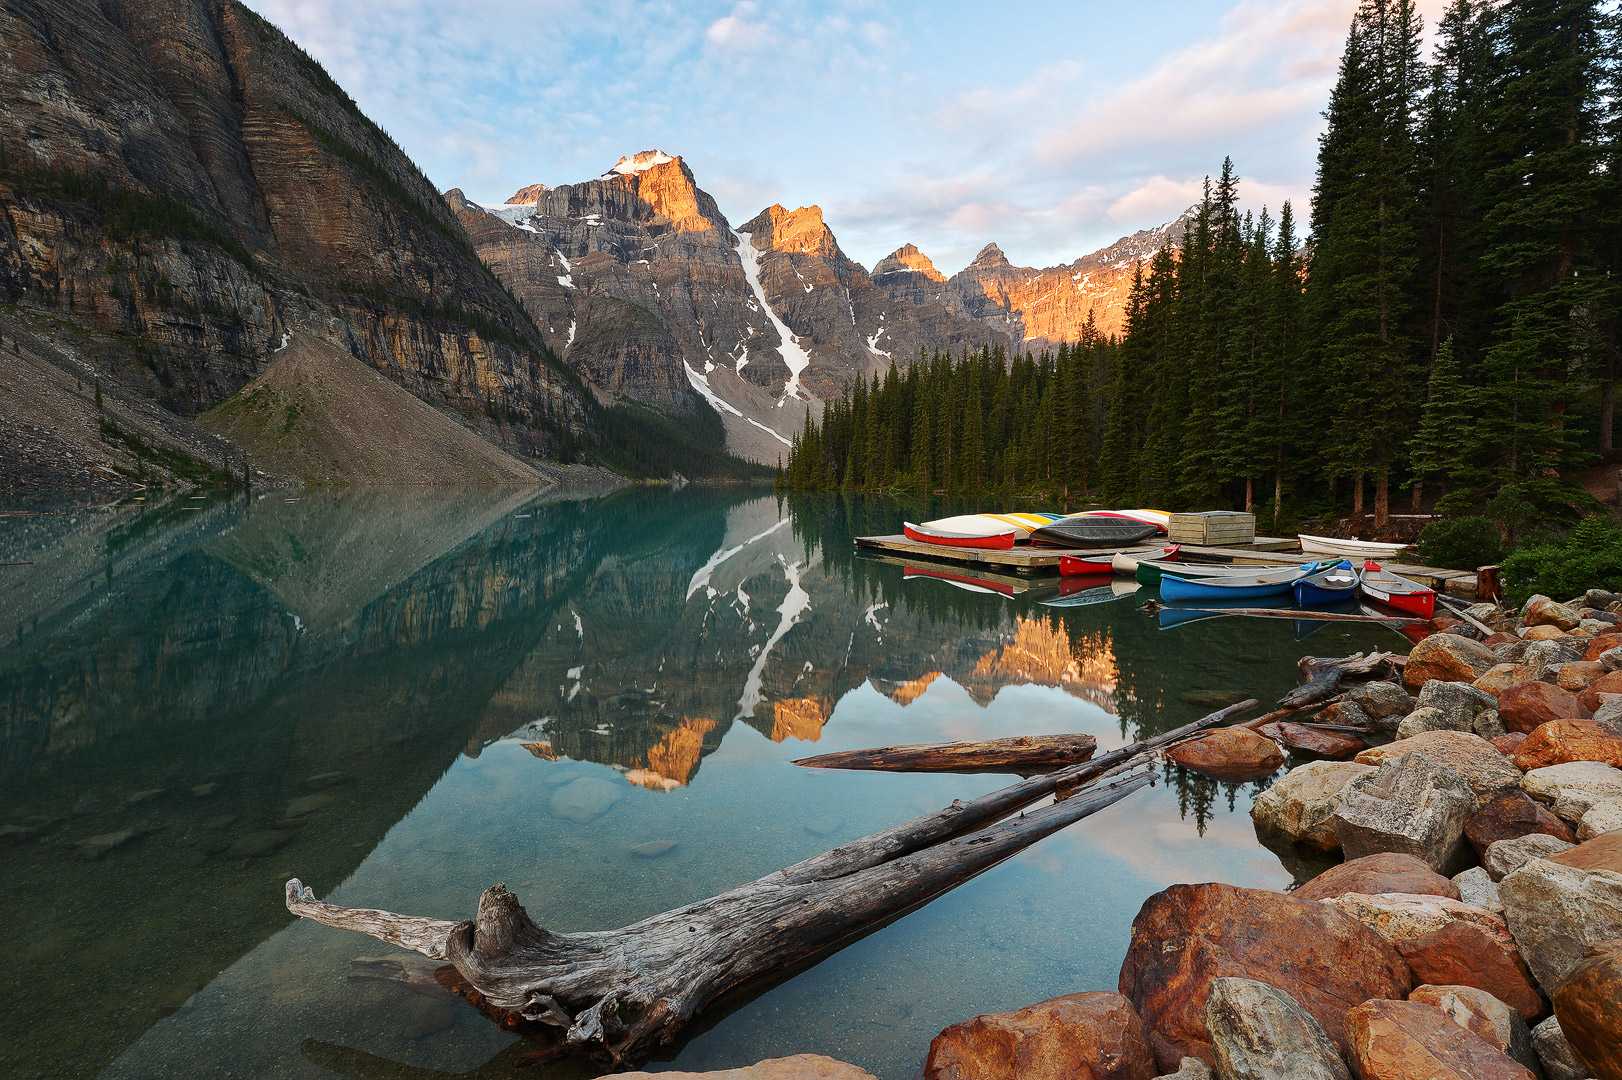 Made In Heaven, Moraine Lake, Canada, banff, jasper, national park, rockies, mountain, glacier, snow, peaks, valley, bernard chen, timescapes, photo